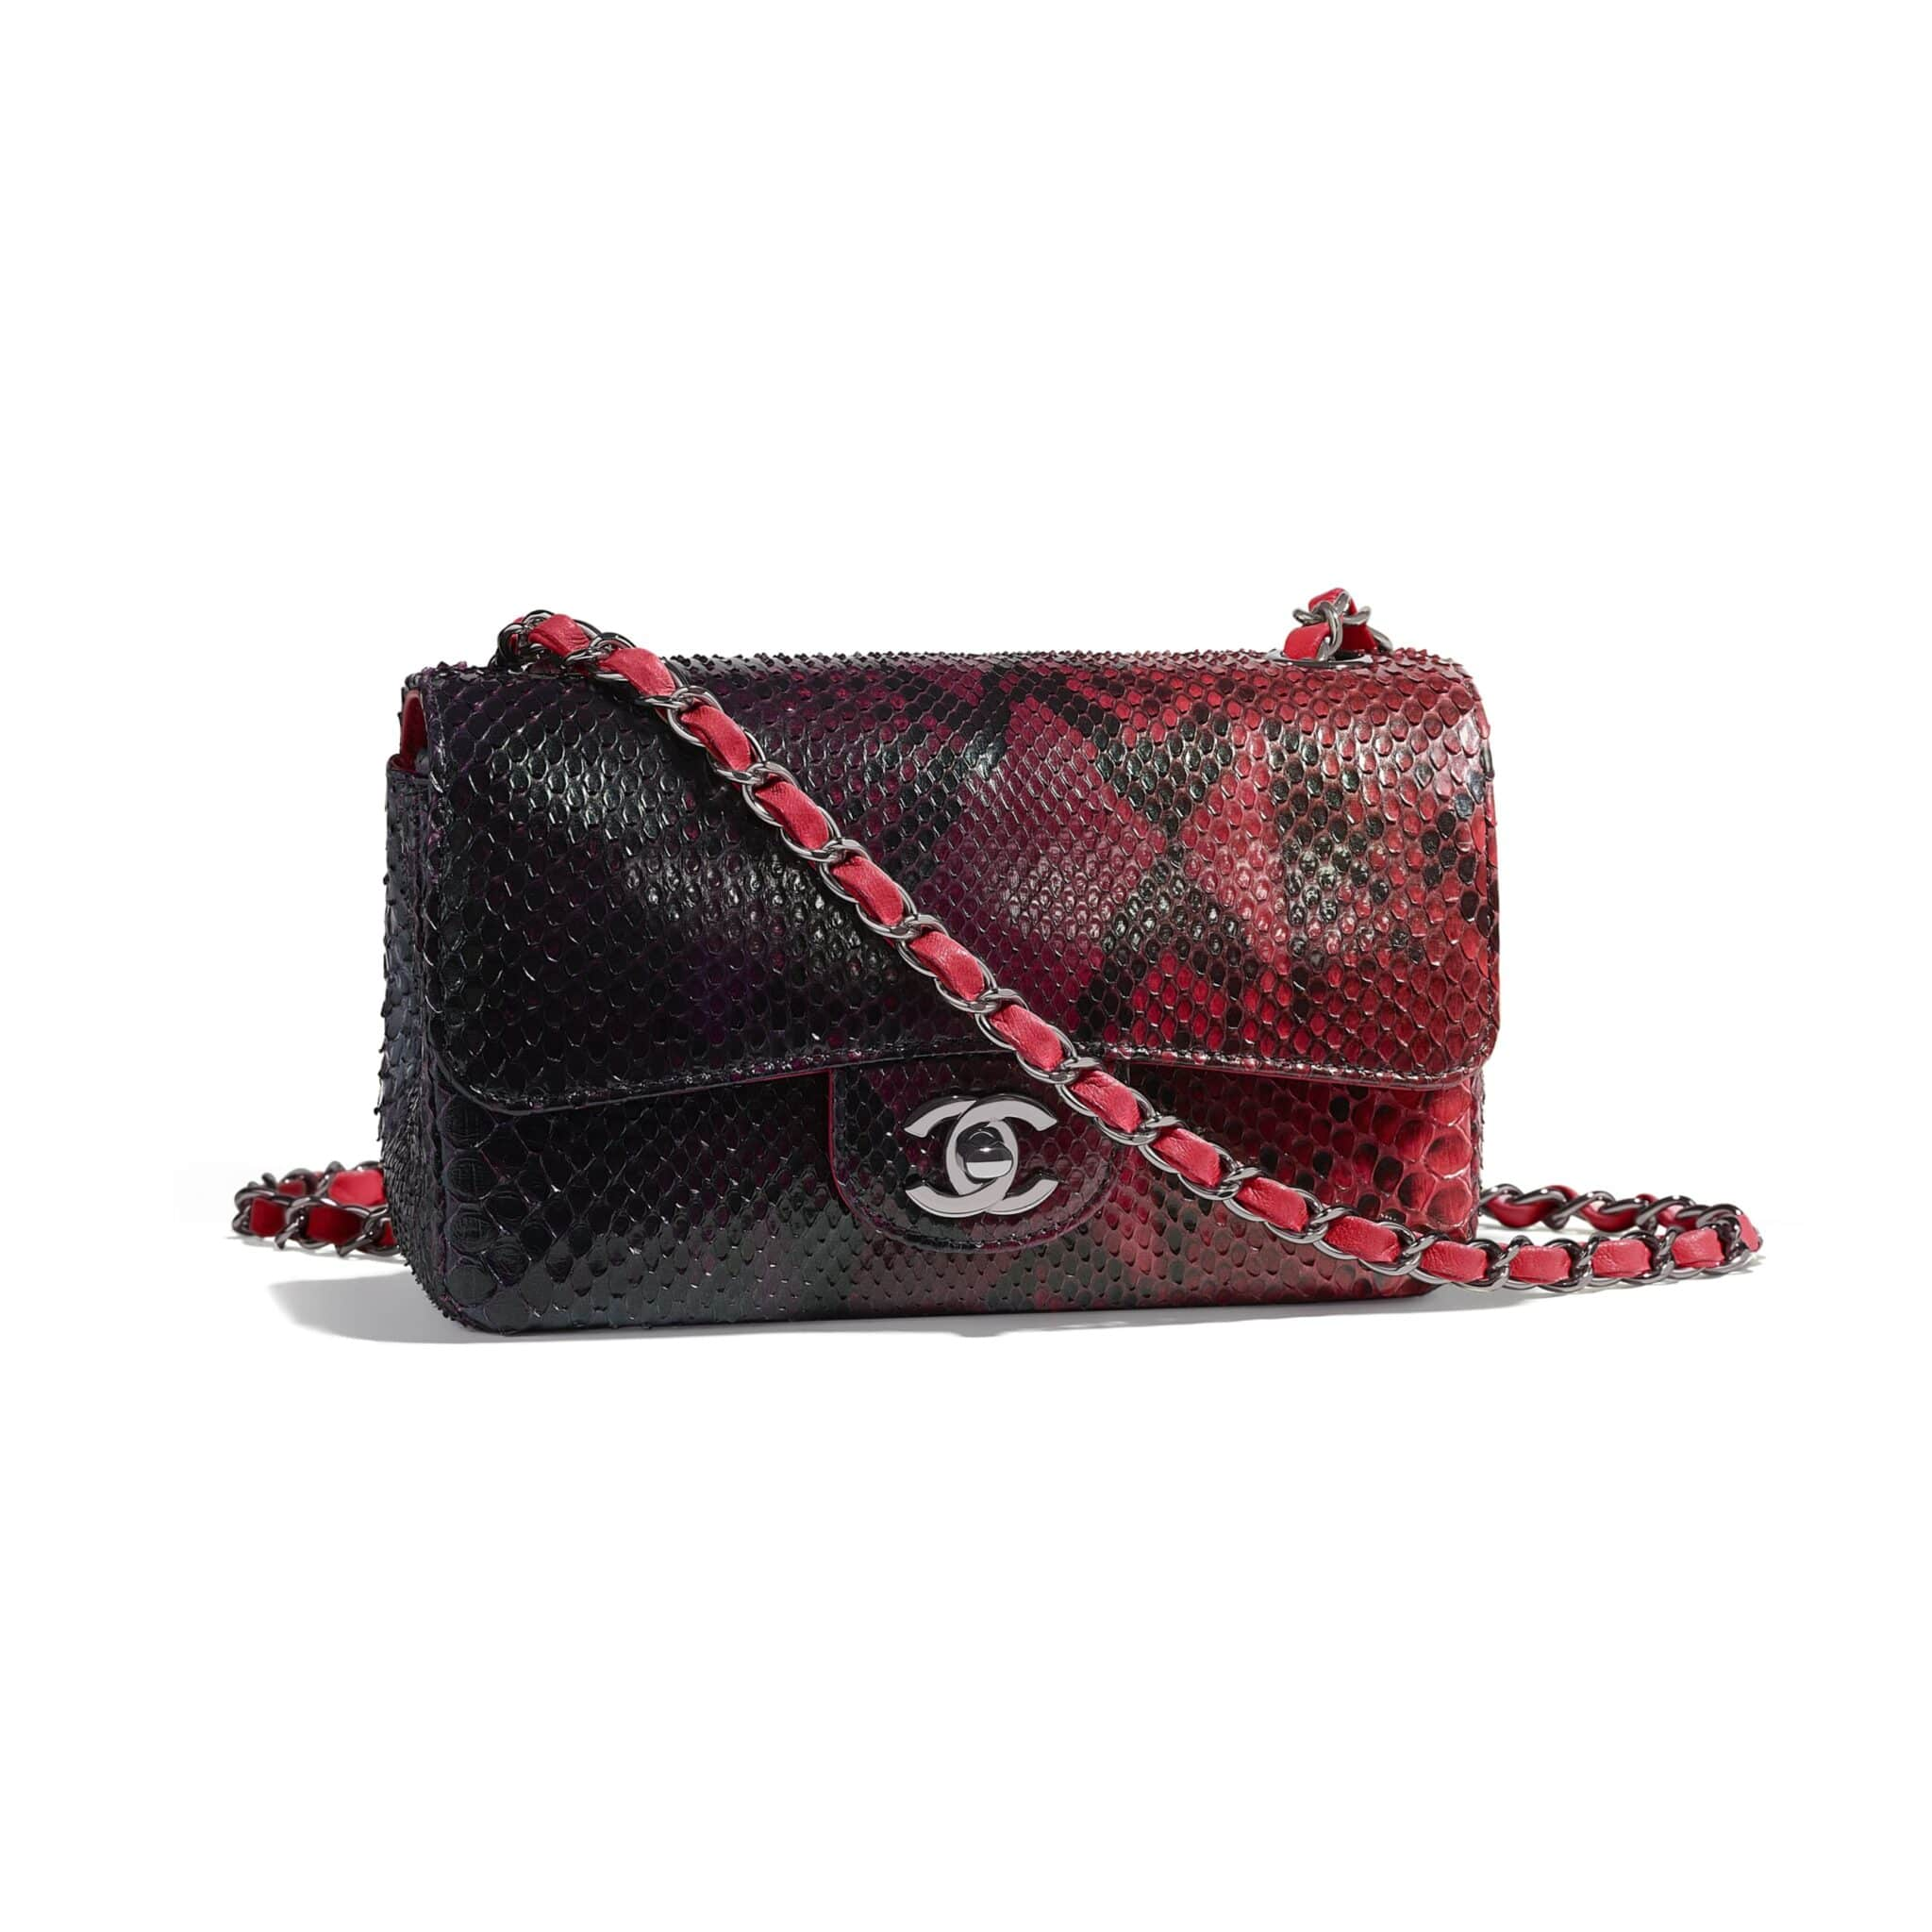 f32f1d1ac2a7 Chanel Fall/Winter 2018 Act 2 Bag Collection With The Chanel 31 Bag   Page Chanel  Python Classic Small Double Flap ...